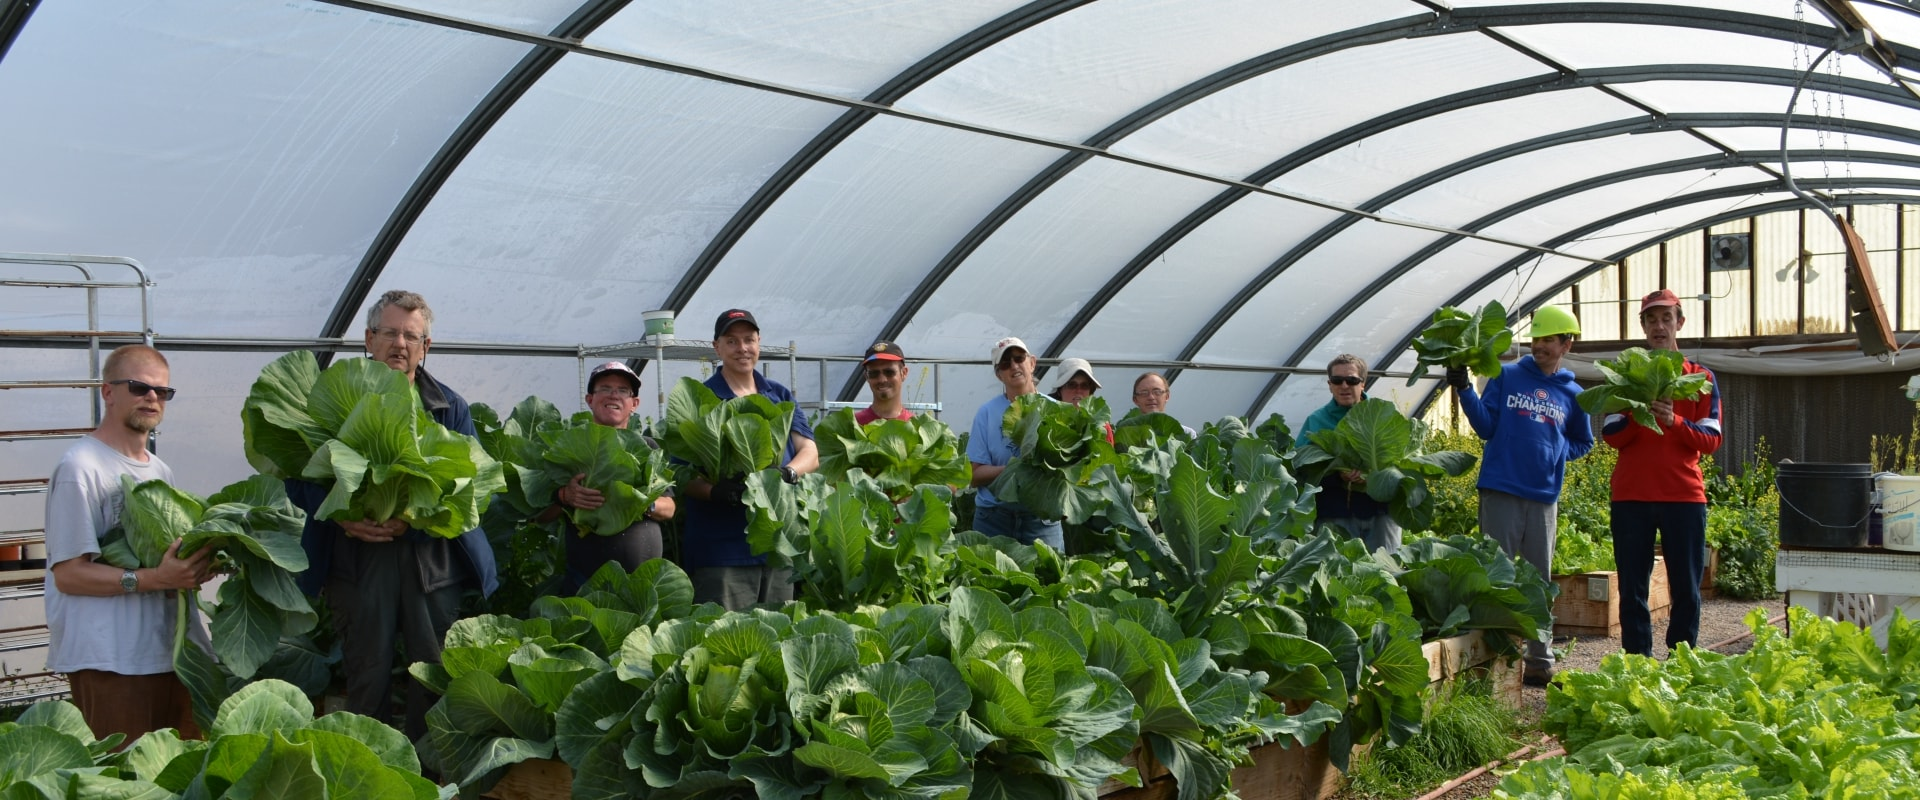 Group of developmentally disabled adults celebrating in lettuce garden